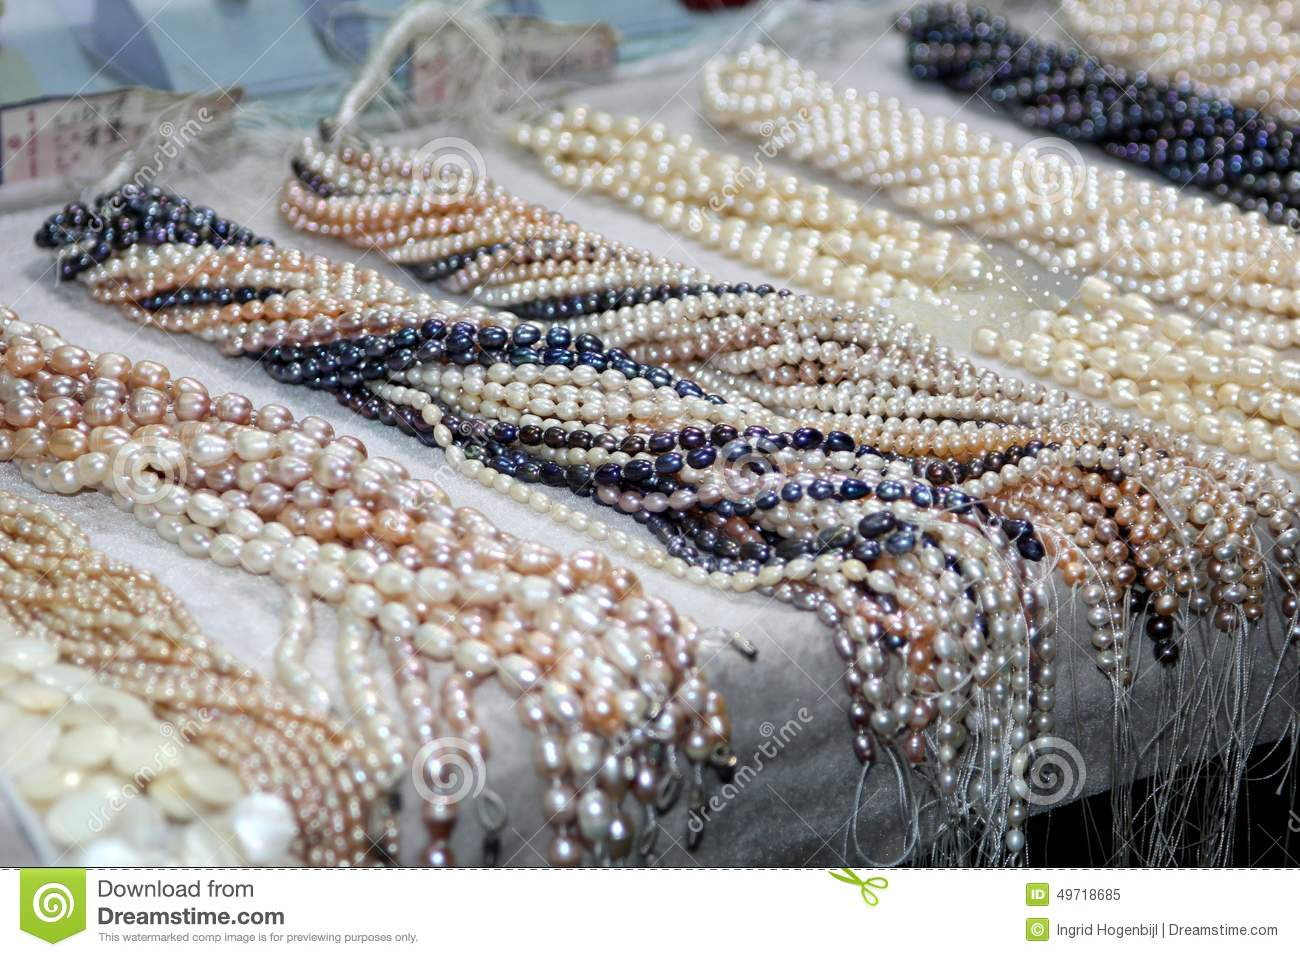 Strings of deluxe cultive freshwater pearls for celebrations